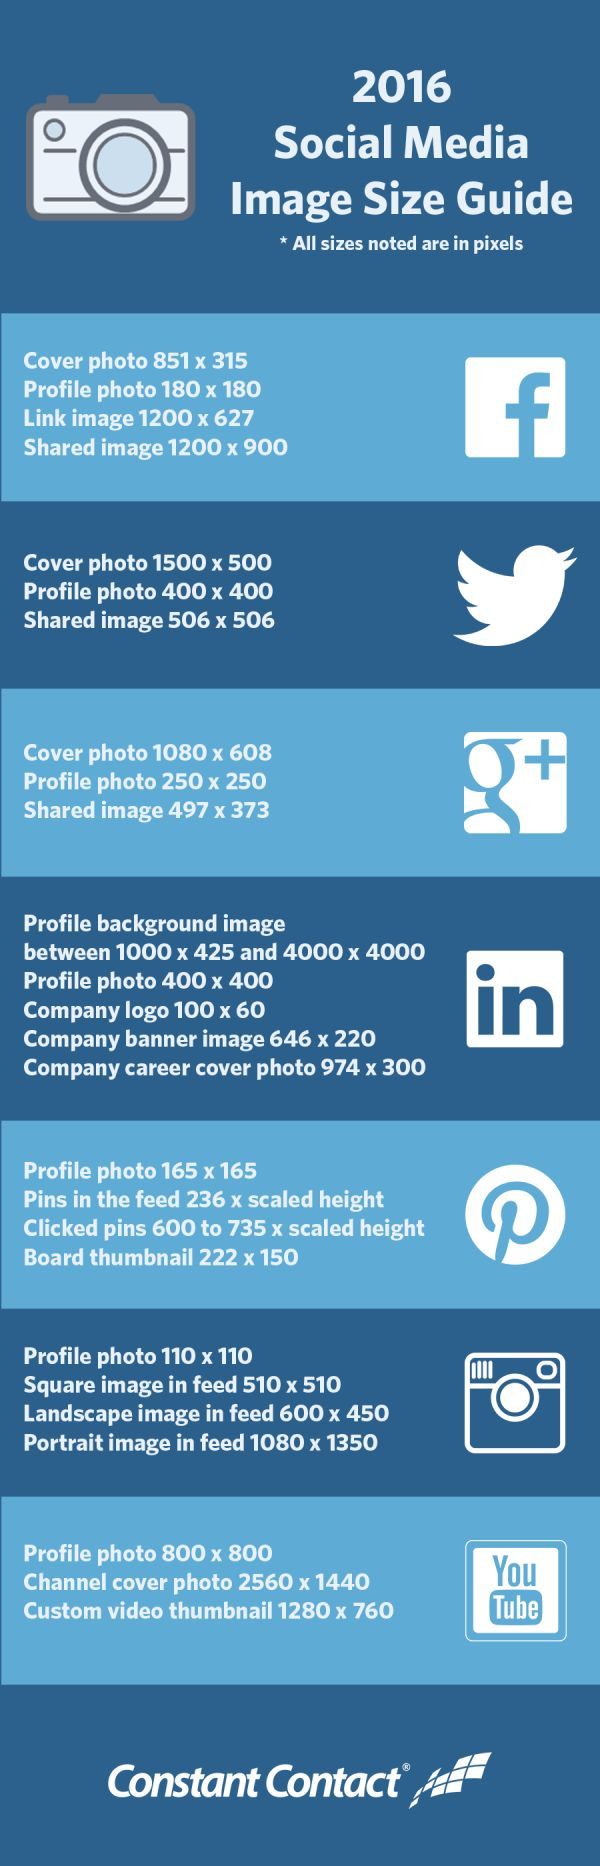 2016 Social Media Image Size Guide